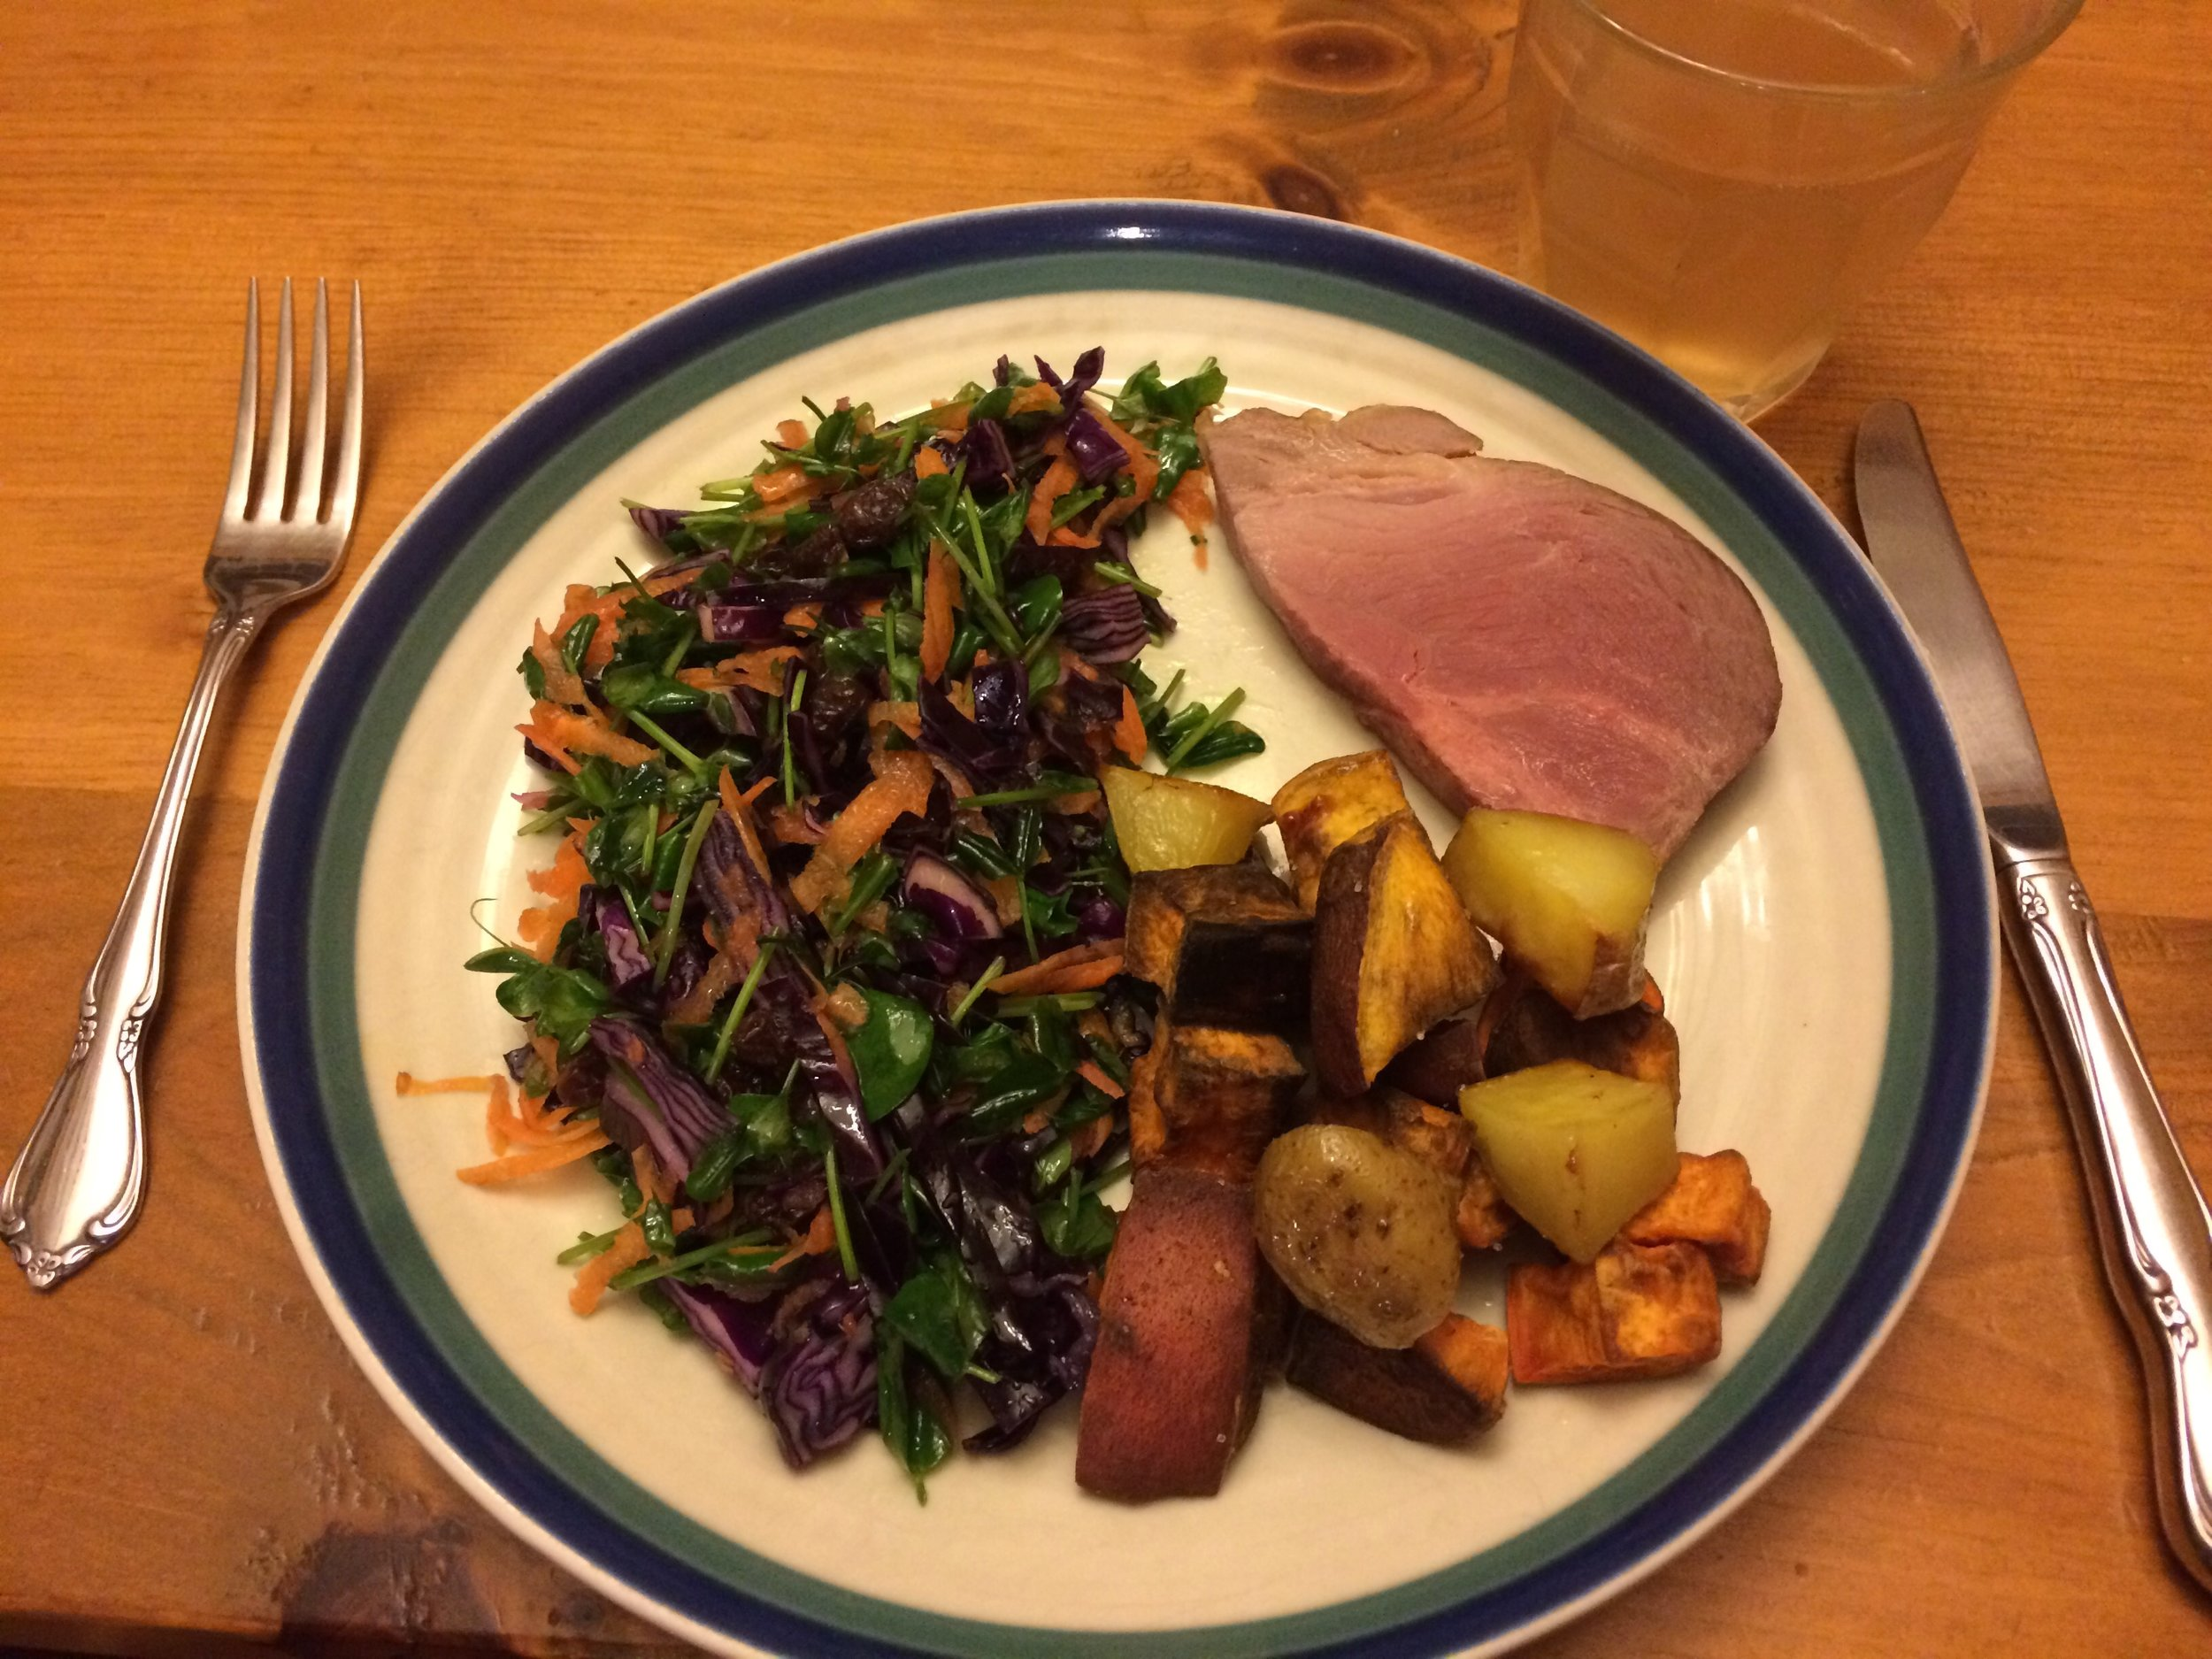 Here's an example of an AIP or Paleo meal. 1/2 plate filled with Red Cabbage-Carrot-Pea Shoot salad with olive oil, 1/4 plate with a piece of pasture-raised, traditionally cured ham, and a 1/4 plate with a mix of sweet potato and yams roasted in bacon fat.